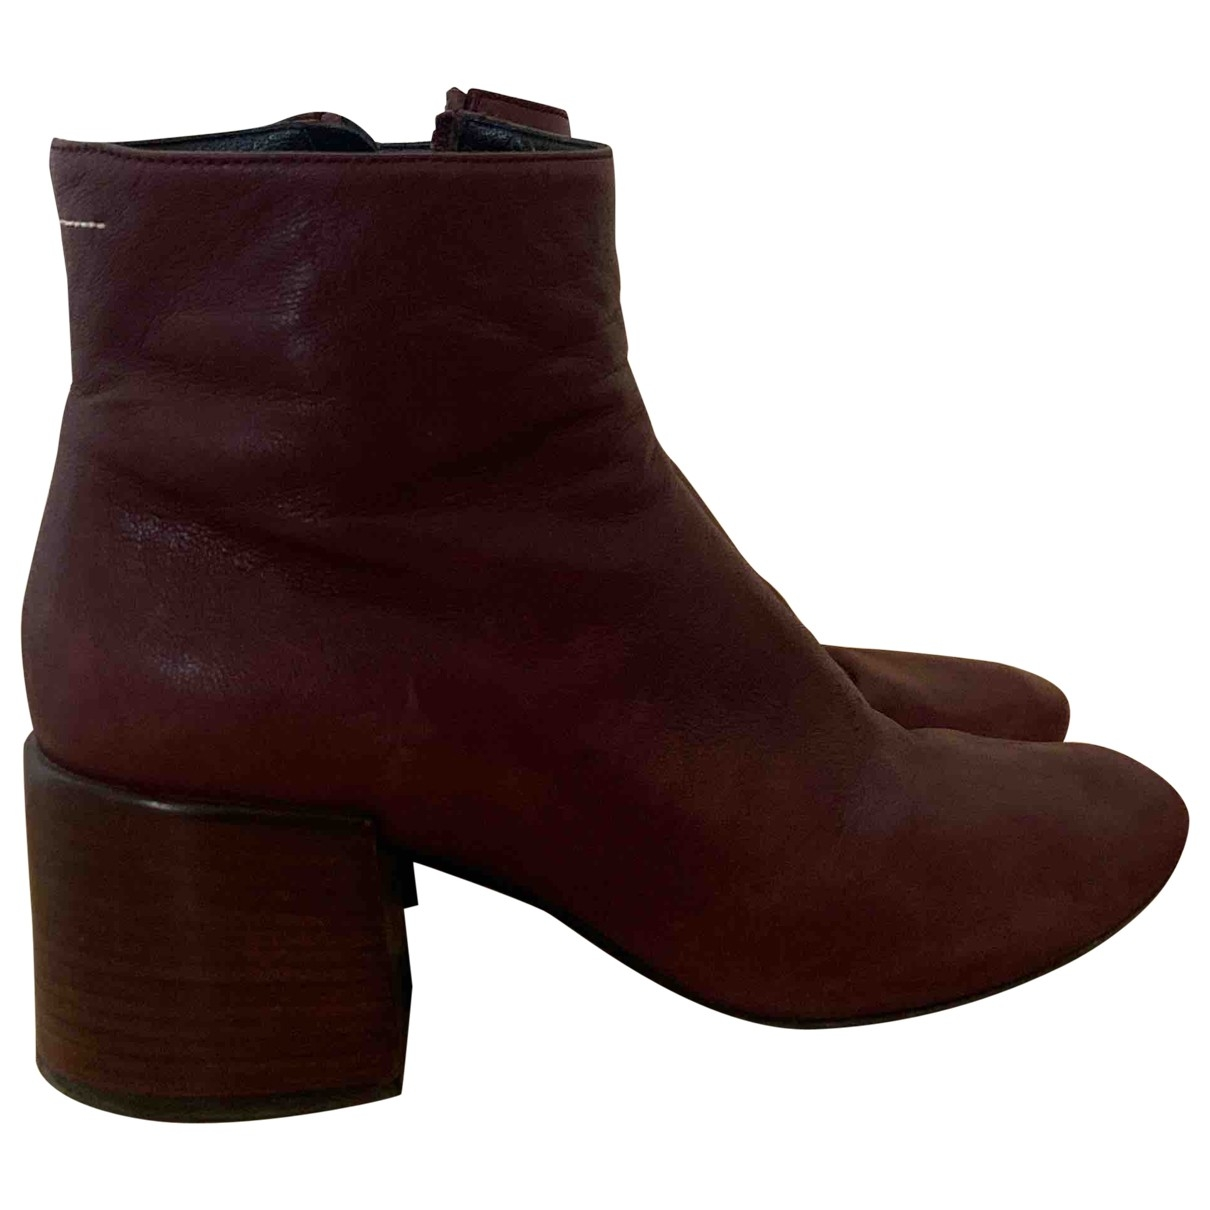 Mm6 \N Burgundy Leather Ankle boots for Women 40 EU